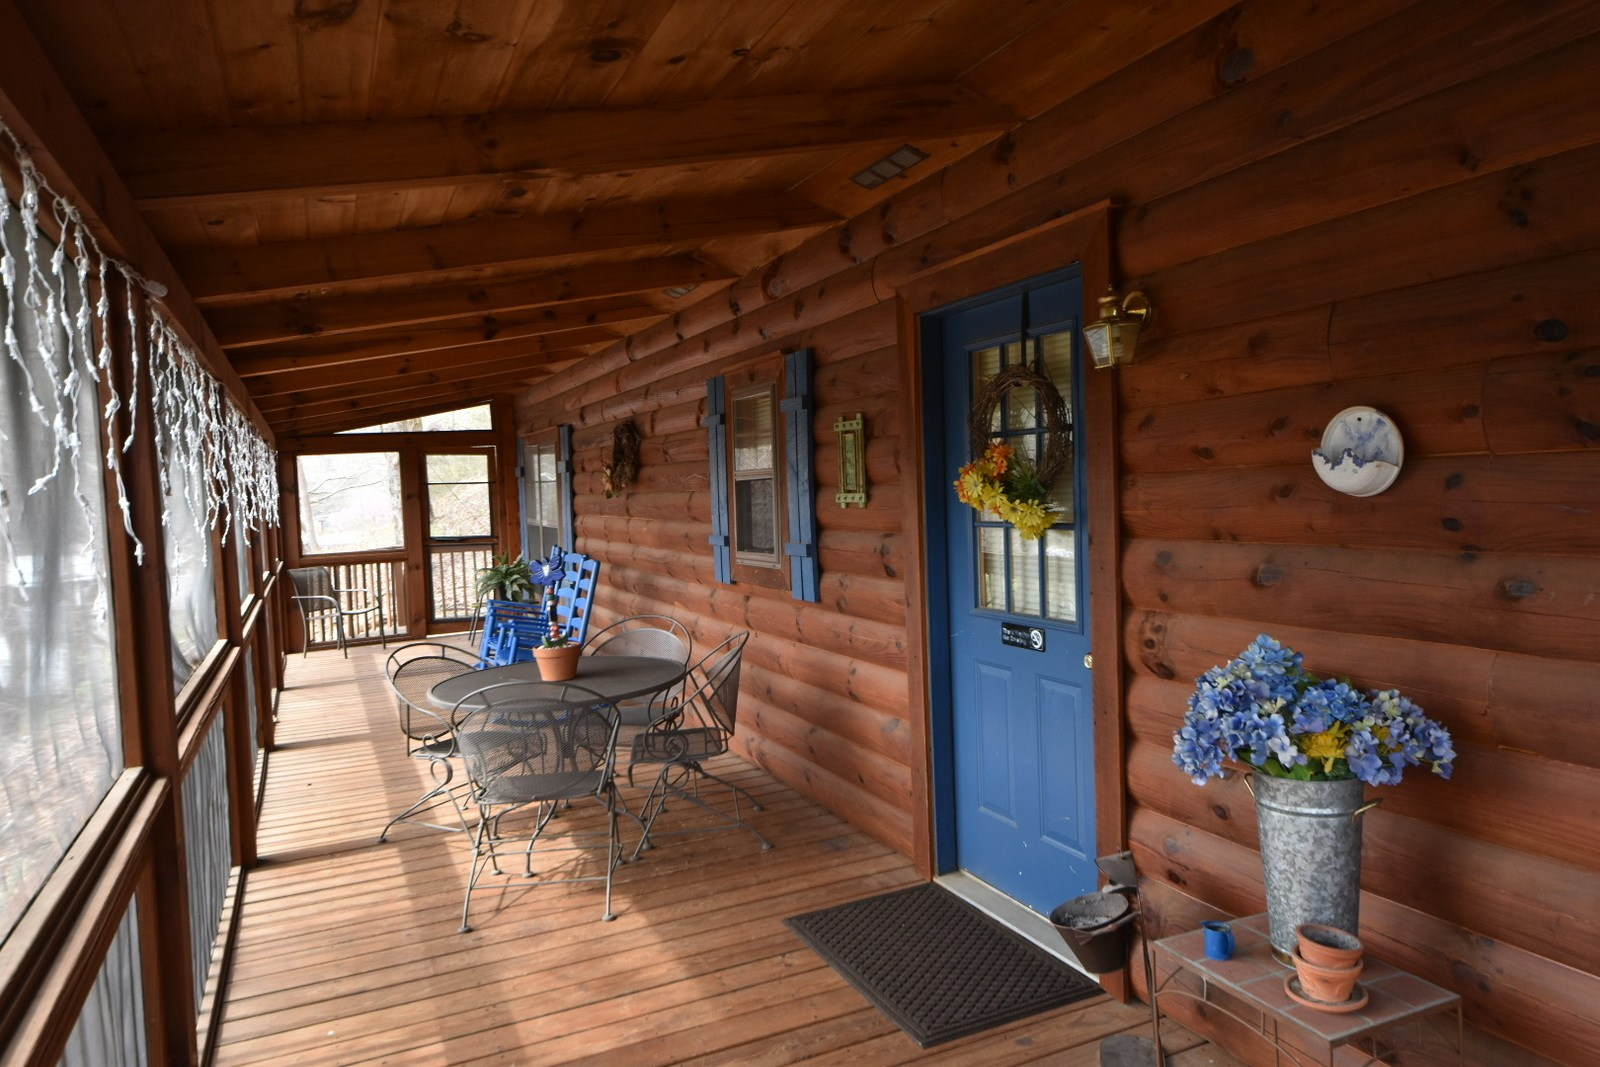 four seasons cottages and cabins lake lure nc blogs workanyware co rh blogs workanyware co uk